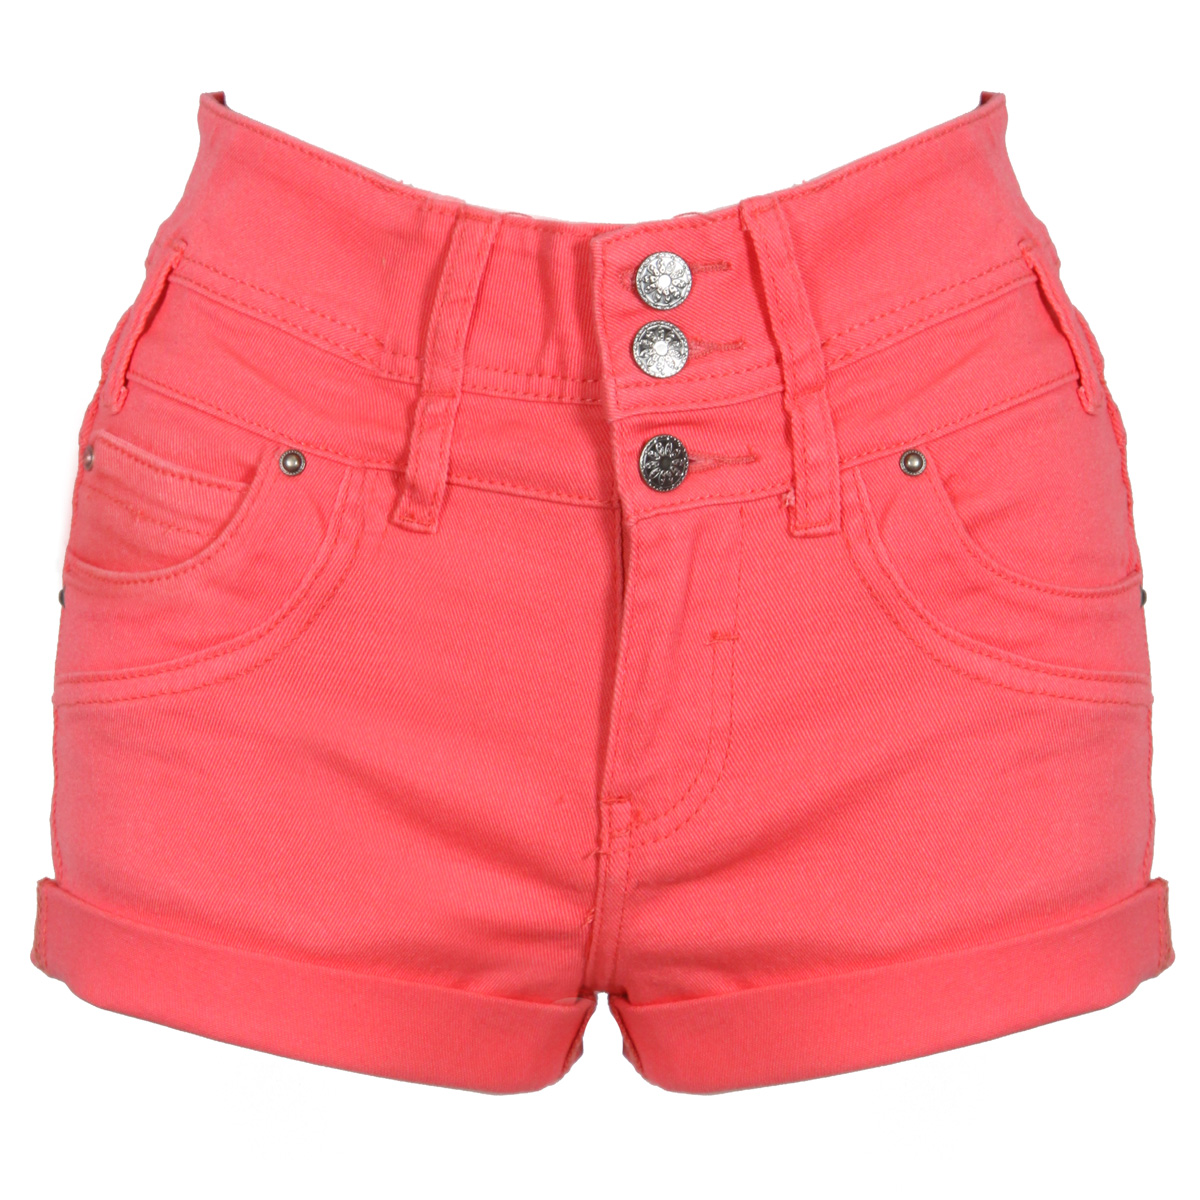 NEW WOMENS CORAL PINK DENIM SHORTS HIGH WAIST HOT PANTS HOTPANTS LADIES CASUAL Enlarged Preview